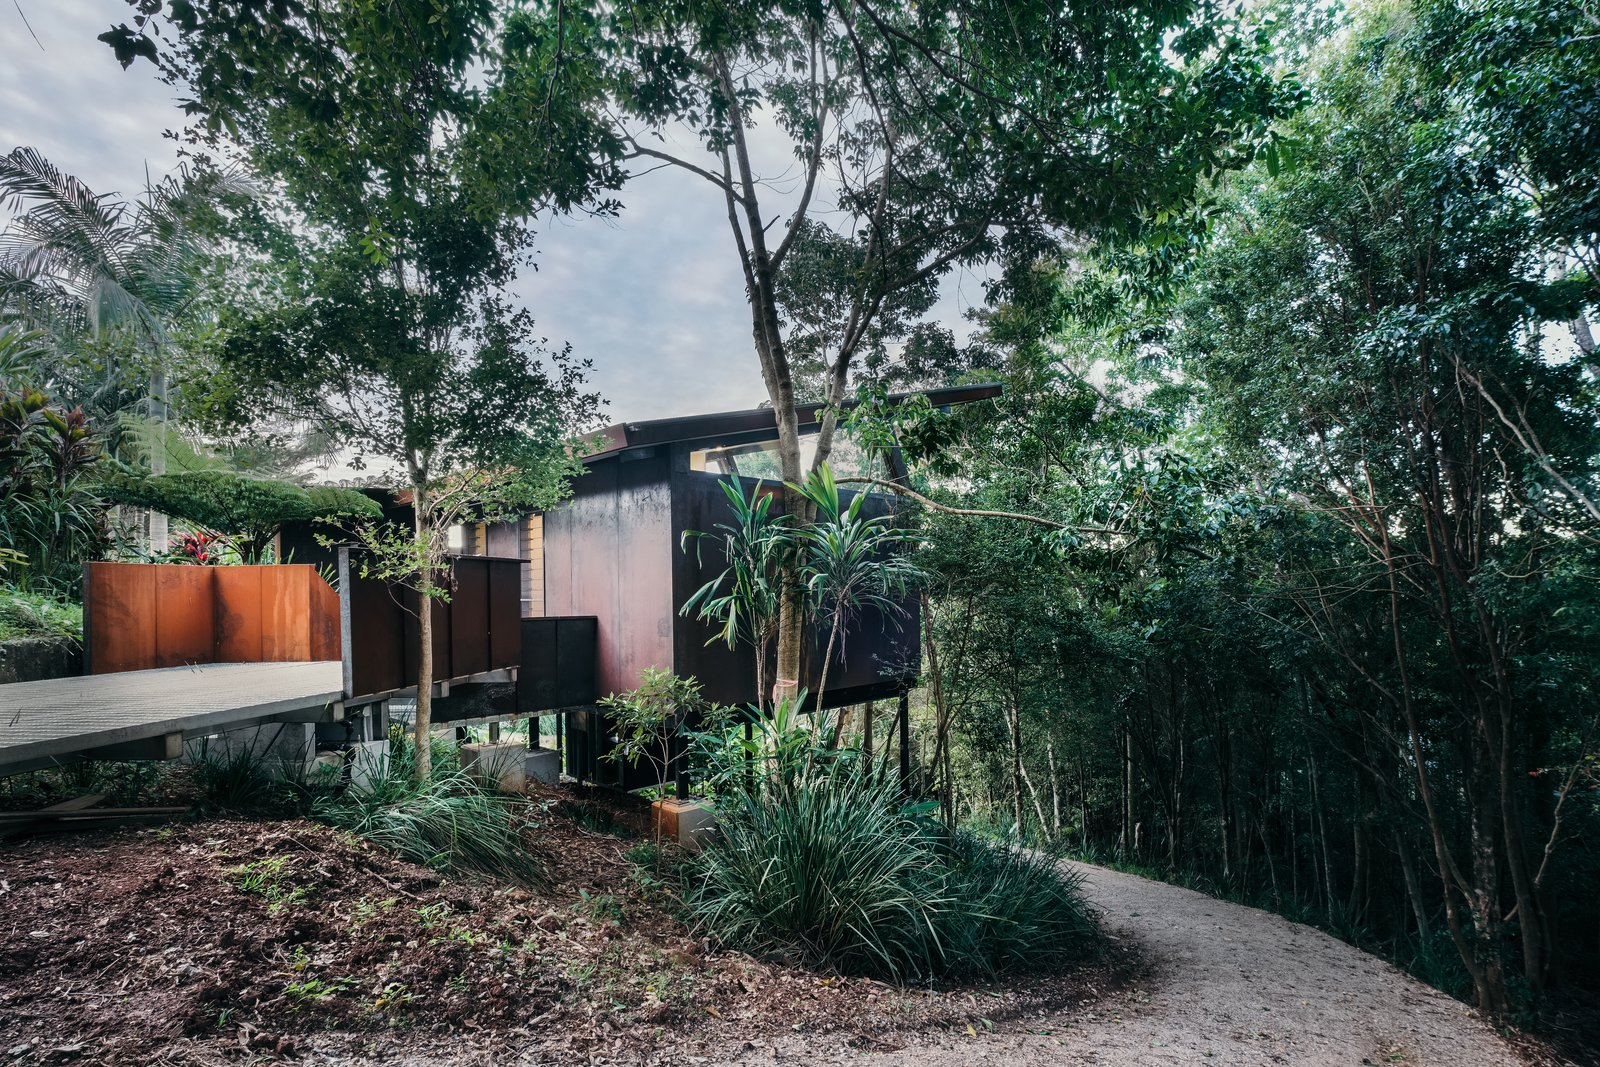 Outdoor, Small, Woodland, Trees, Wood, Vertical, Walkways, Wood, Shrubs, Side Yard, and Slope The home's low-maintenance Cor-Ten steel exterior can be easily washed down when needed.  Outdoor Side Yard Slope Shrubs Photos from A Tiny Guesthouse Hides in a Lush Australian Rainforest